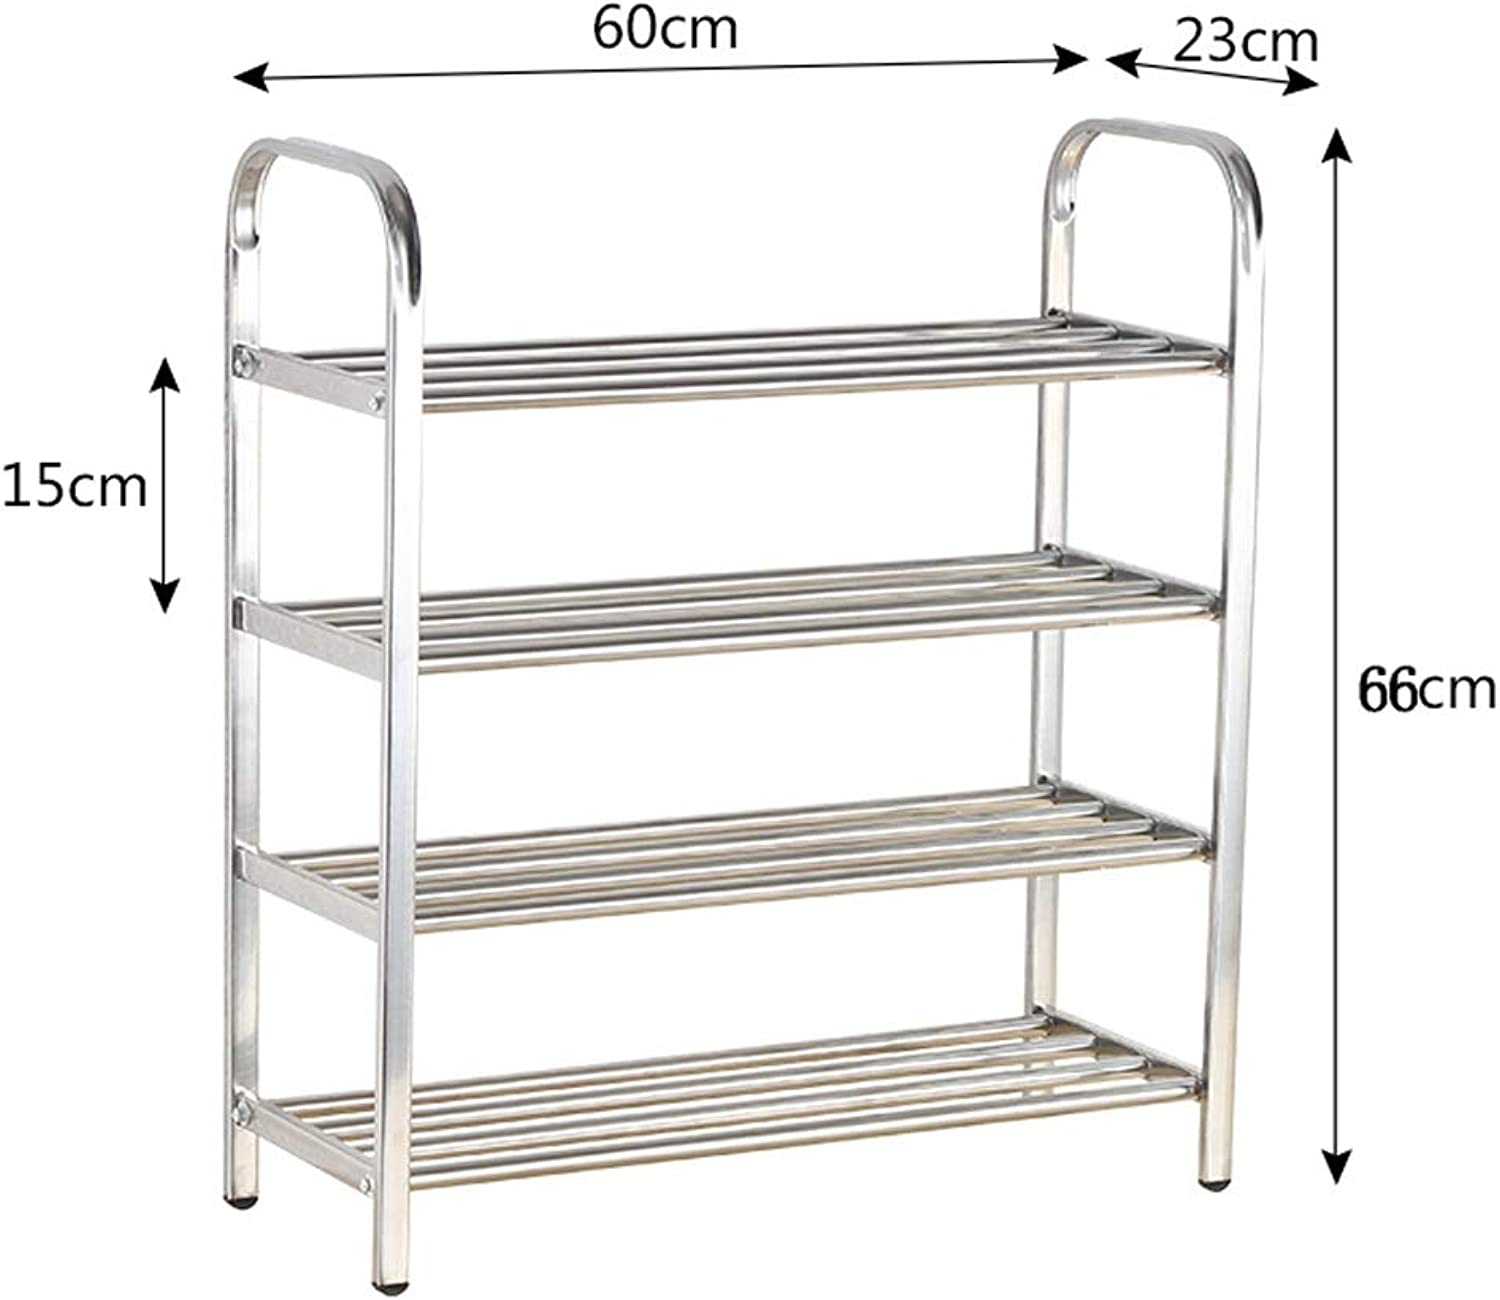 Metal shoes Tower shoes Rack for Mudroom, Storage shoes Organizer Unit Hallway Shelf for Garage Kitchen Entryway, Free Standing shoes Racks, Easy to Put Together (Size   4 Tier 60cm)